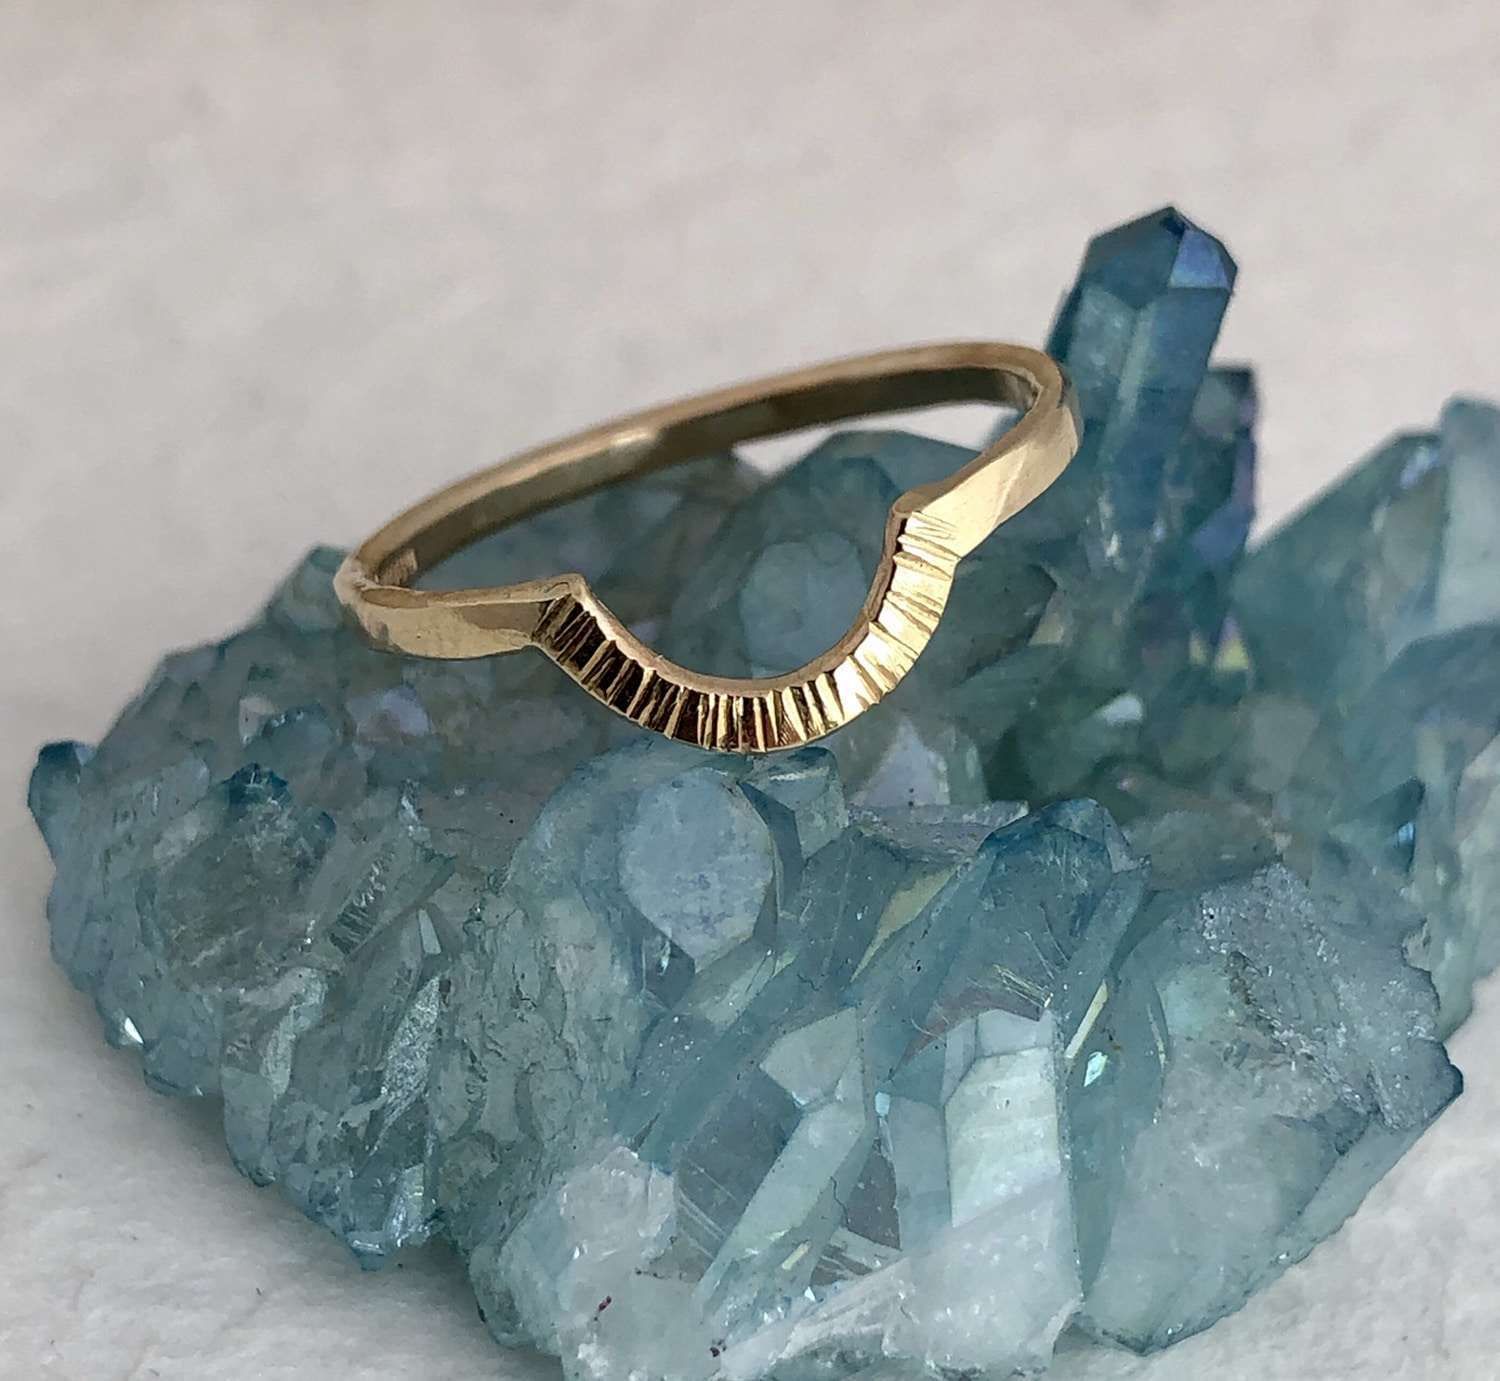 Shop Meaningful GIfts Sarah Hickey Jewellery